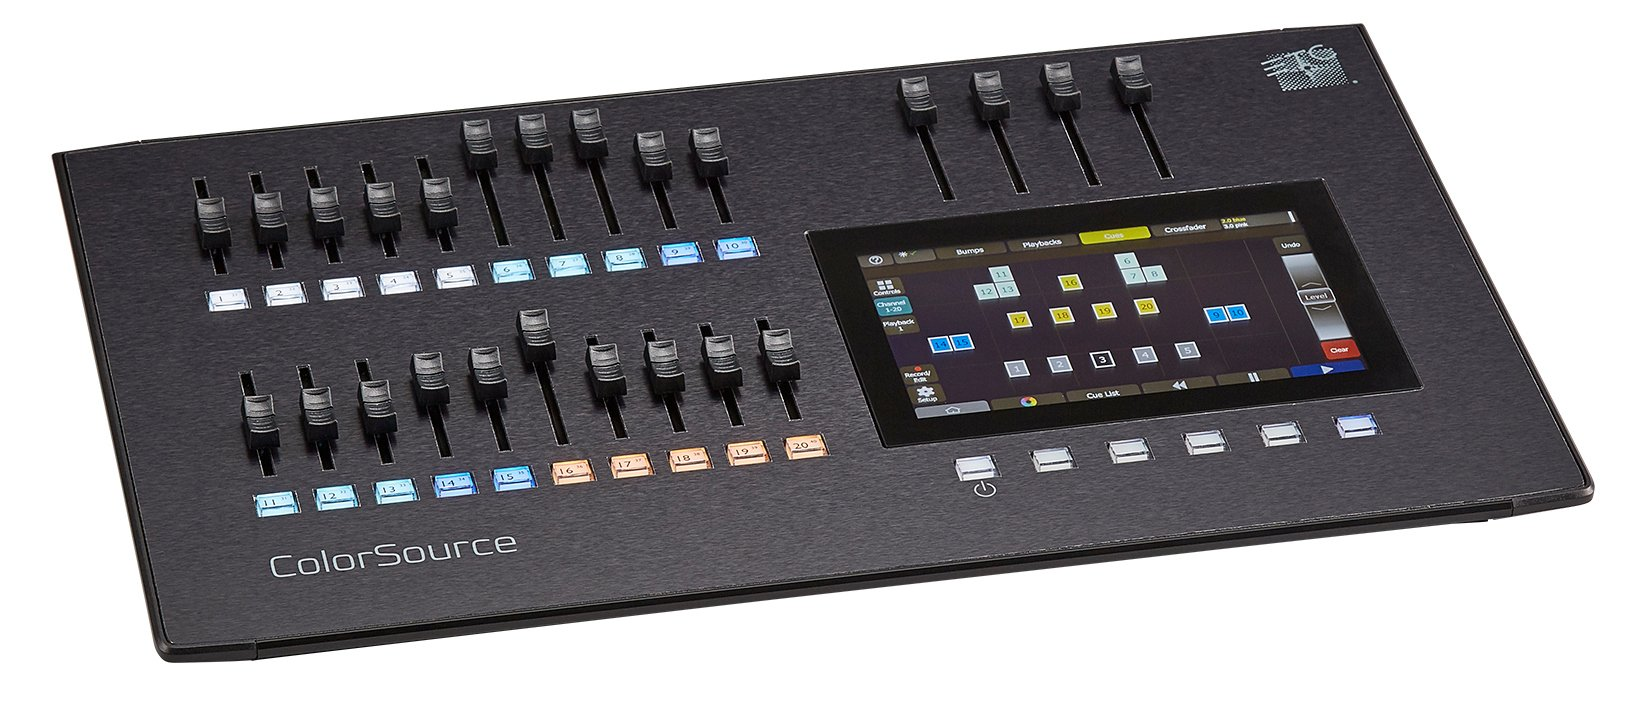 ColorSource 20 Console with 20 Faders and Multi-Touch Display